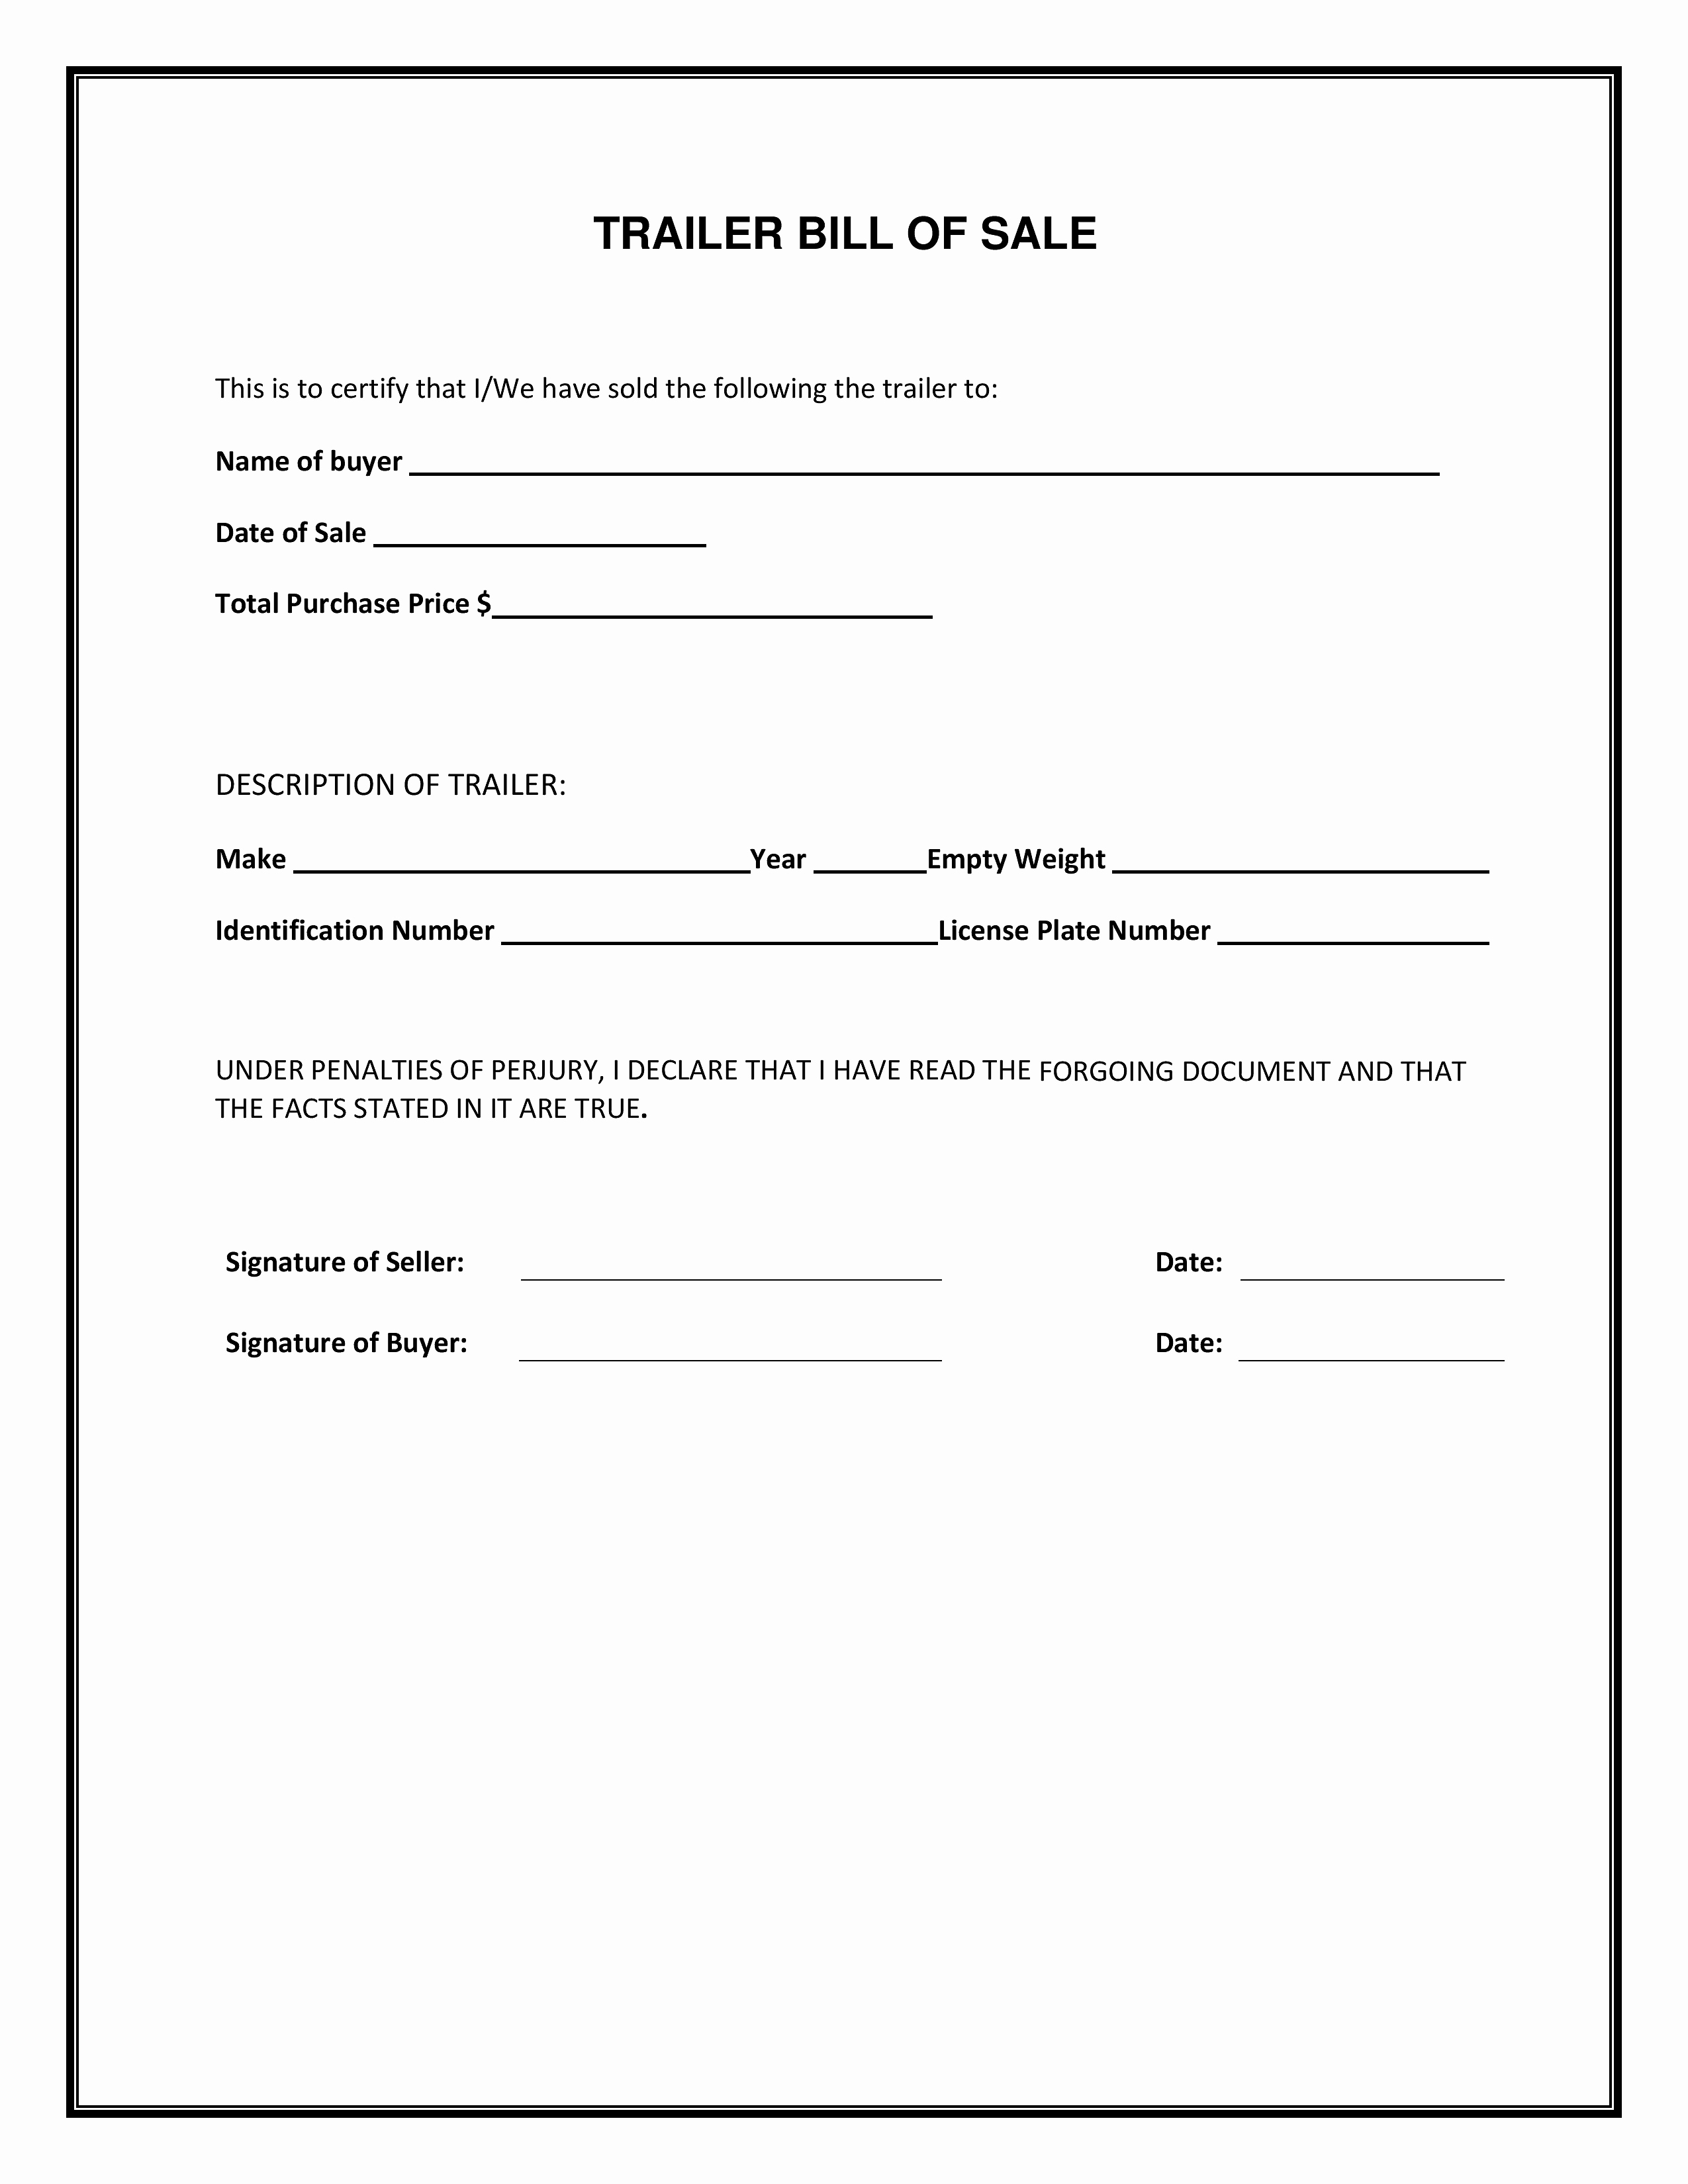 Free Downloadable Bill Of Sale Inspirational Free Bill Sale forms Pdf Template form Download Trailer